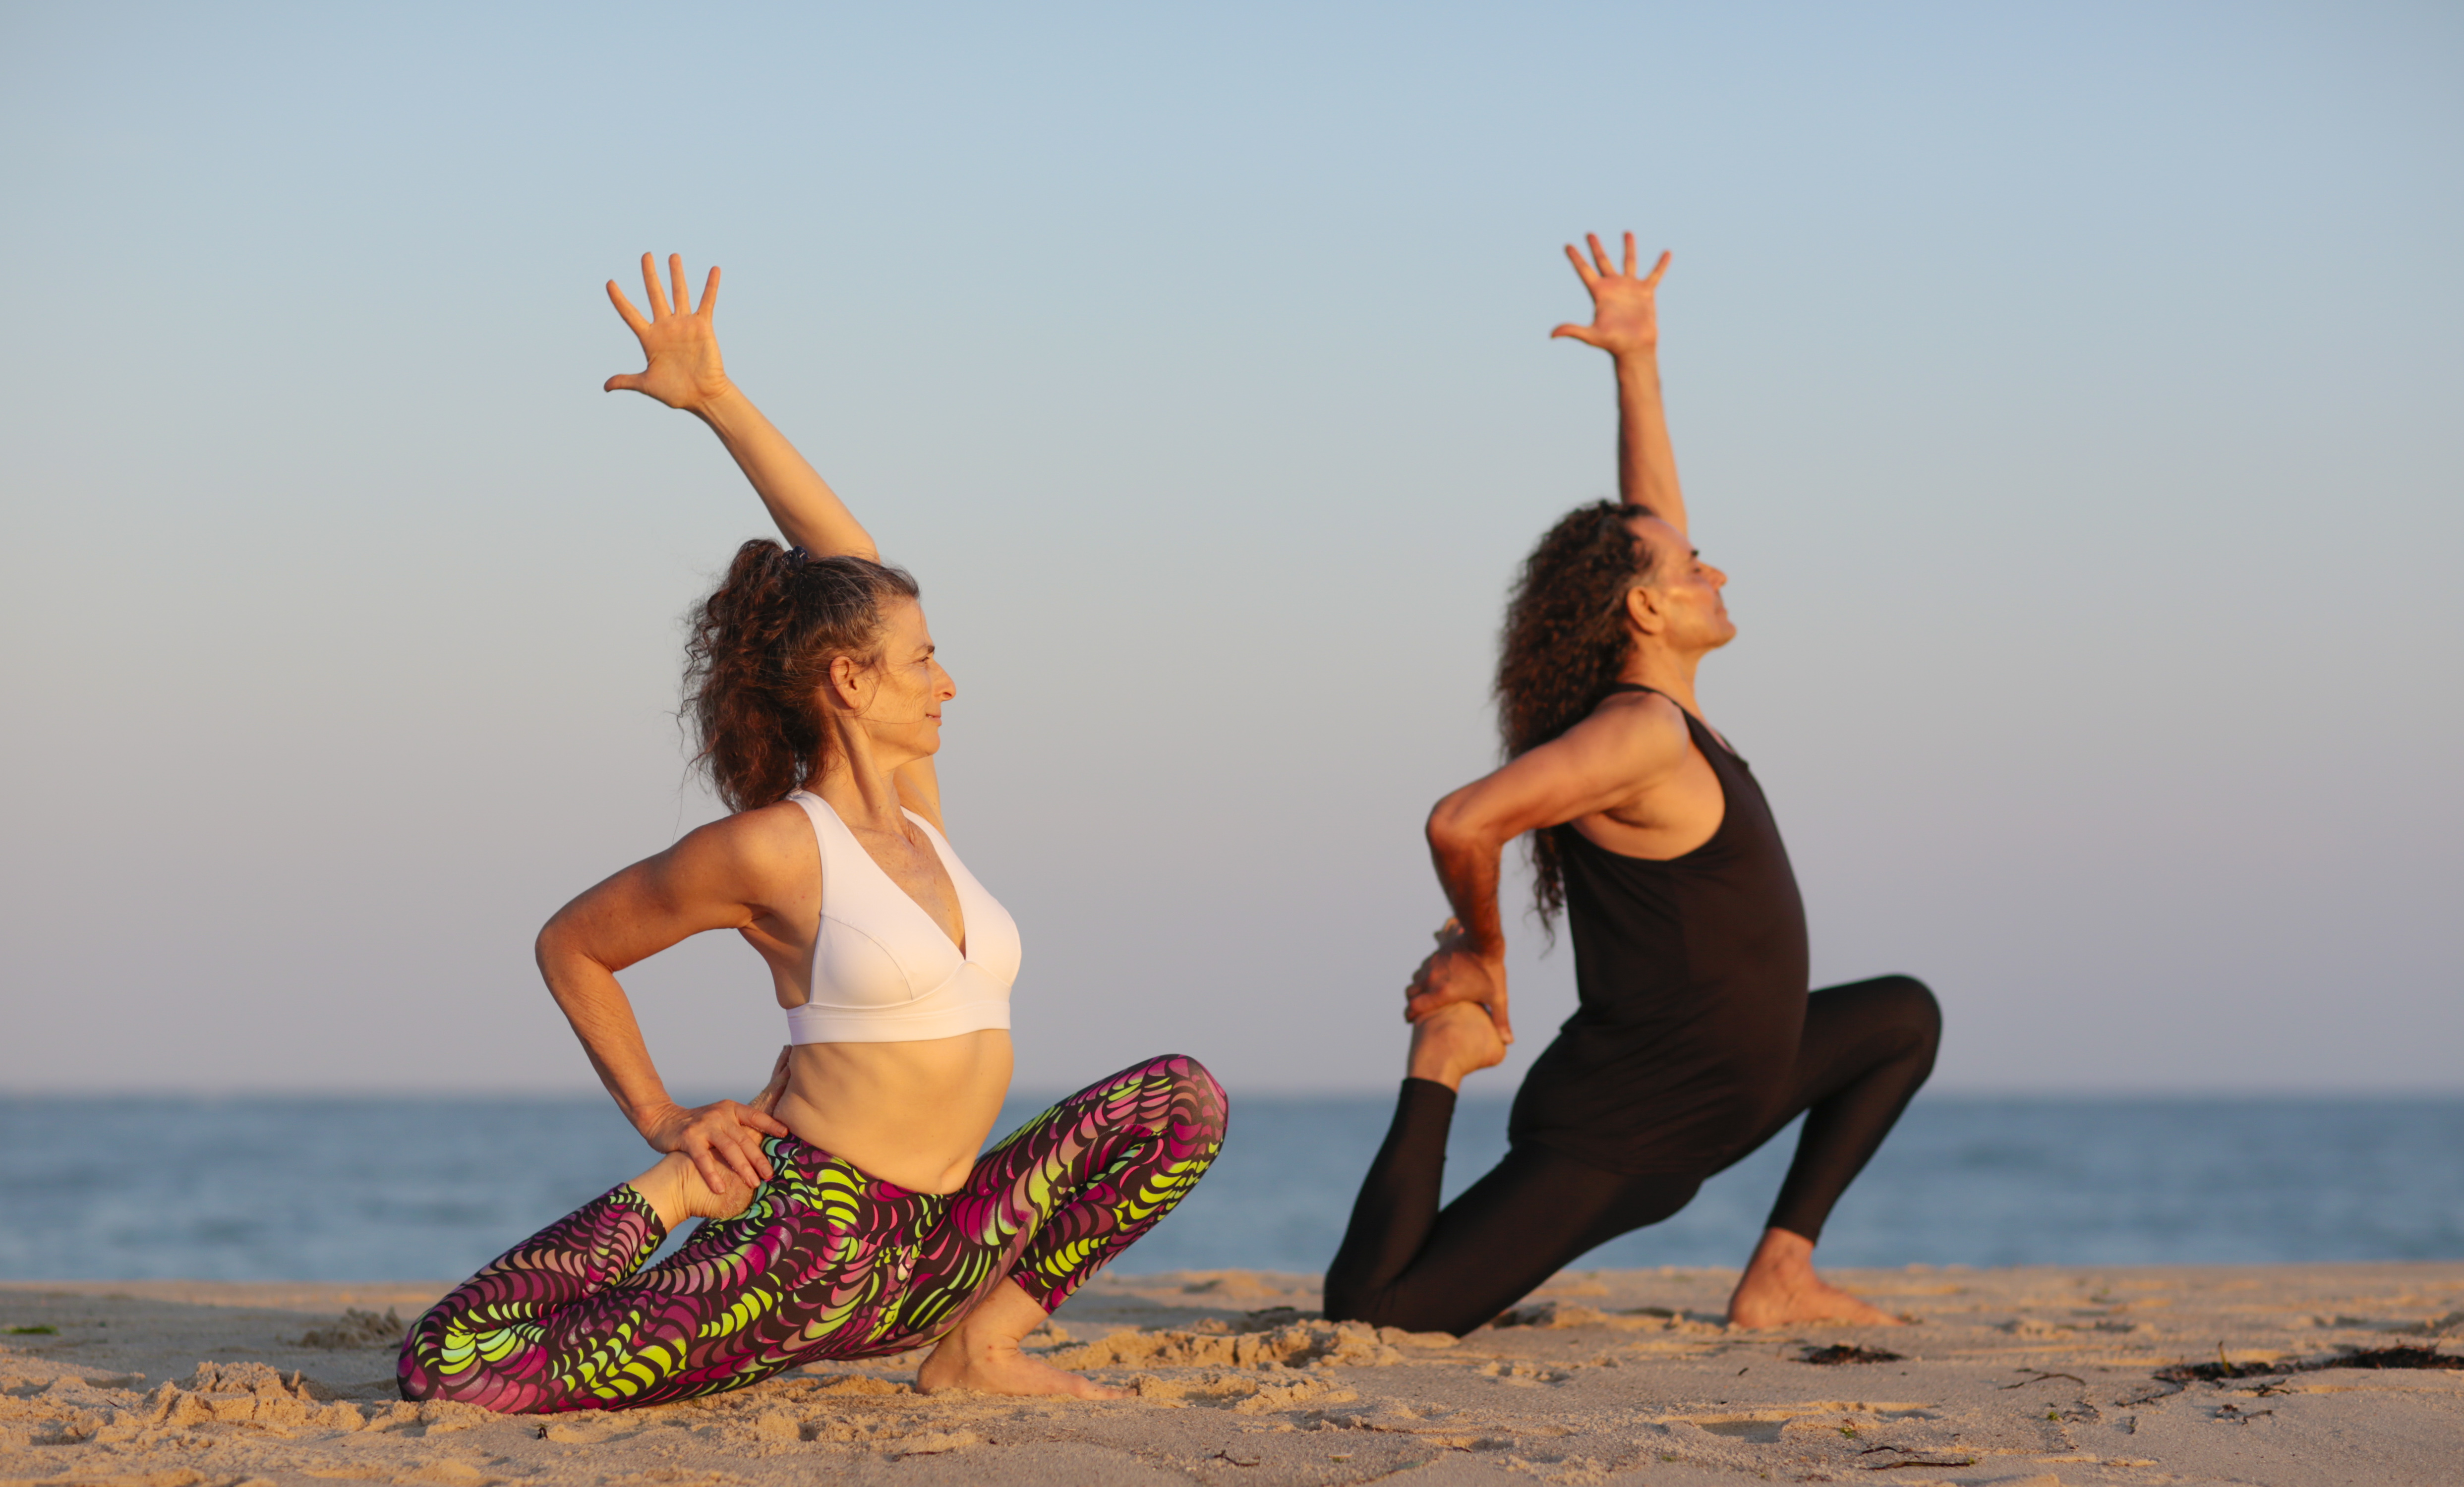 Forrest Yoga Workshop Featuring Ana Forrest Creatix Of Forrest Yoga And Jose Calarco Medicine Man Bliss Wellness Co